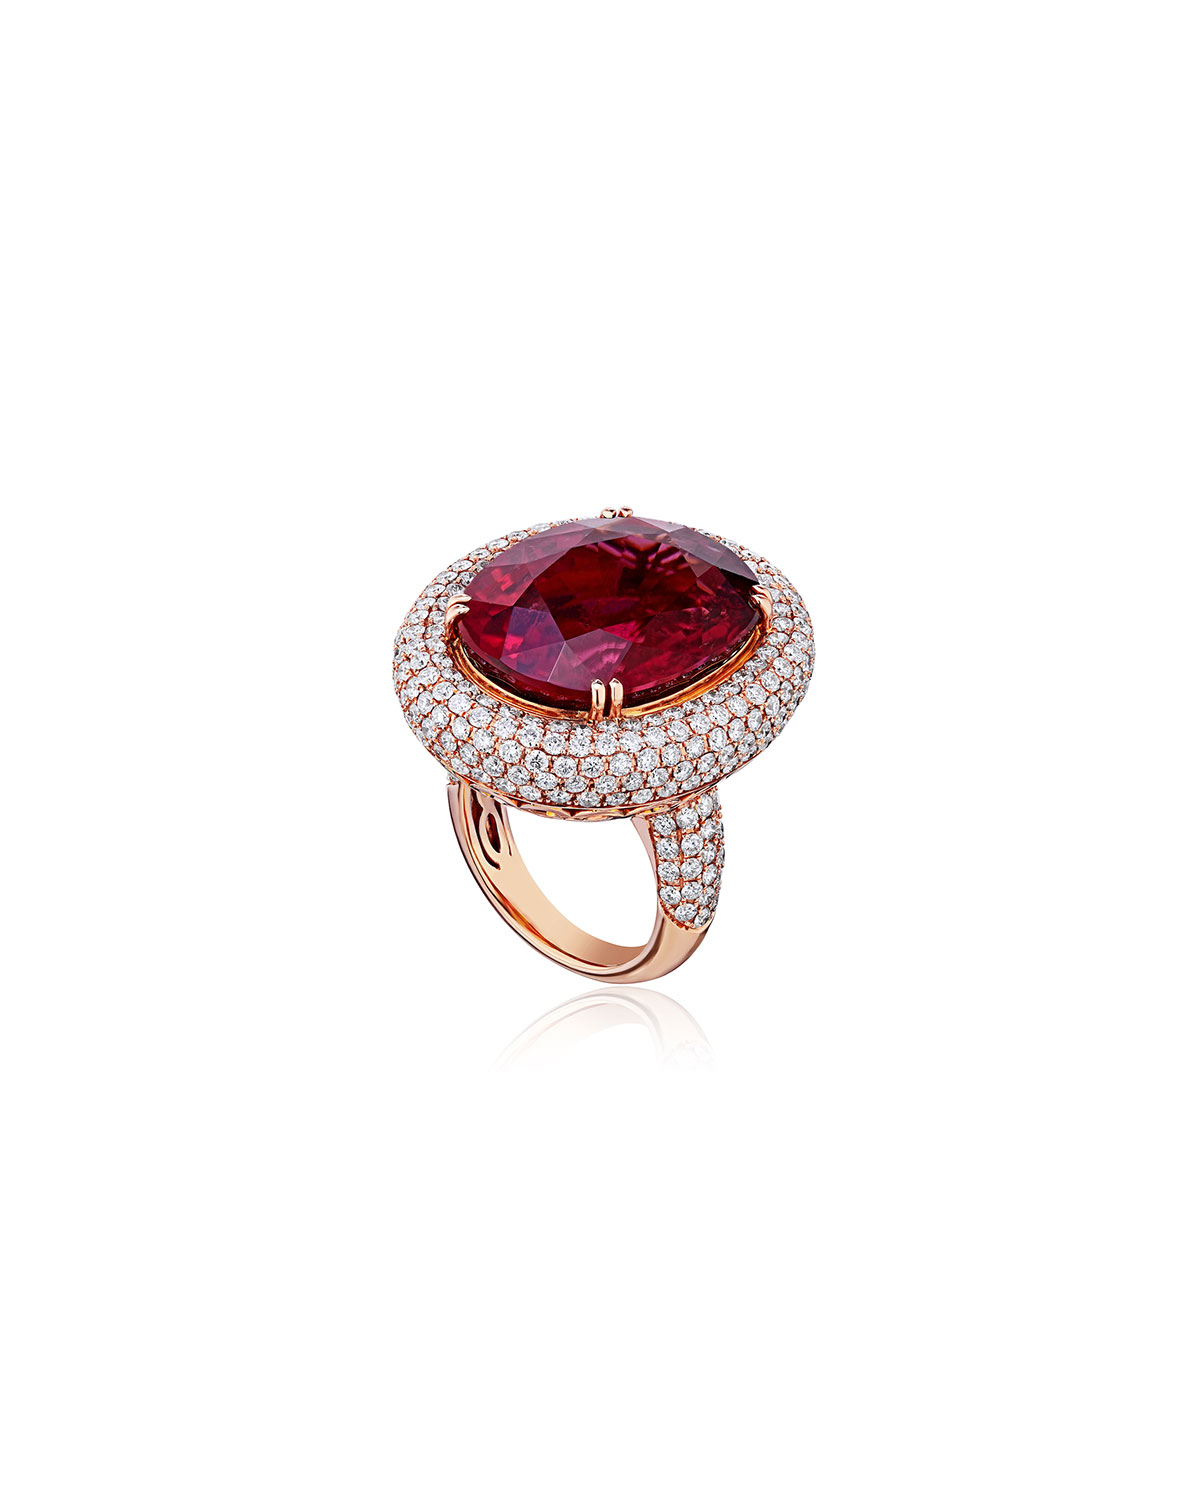 Rubellite Cocktail Ring with Diamonds